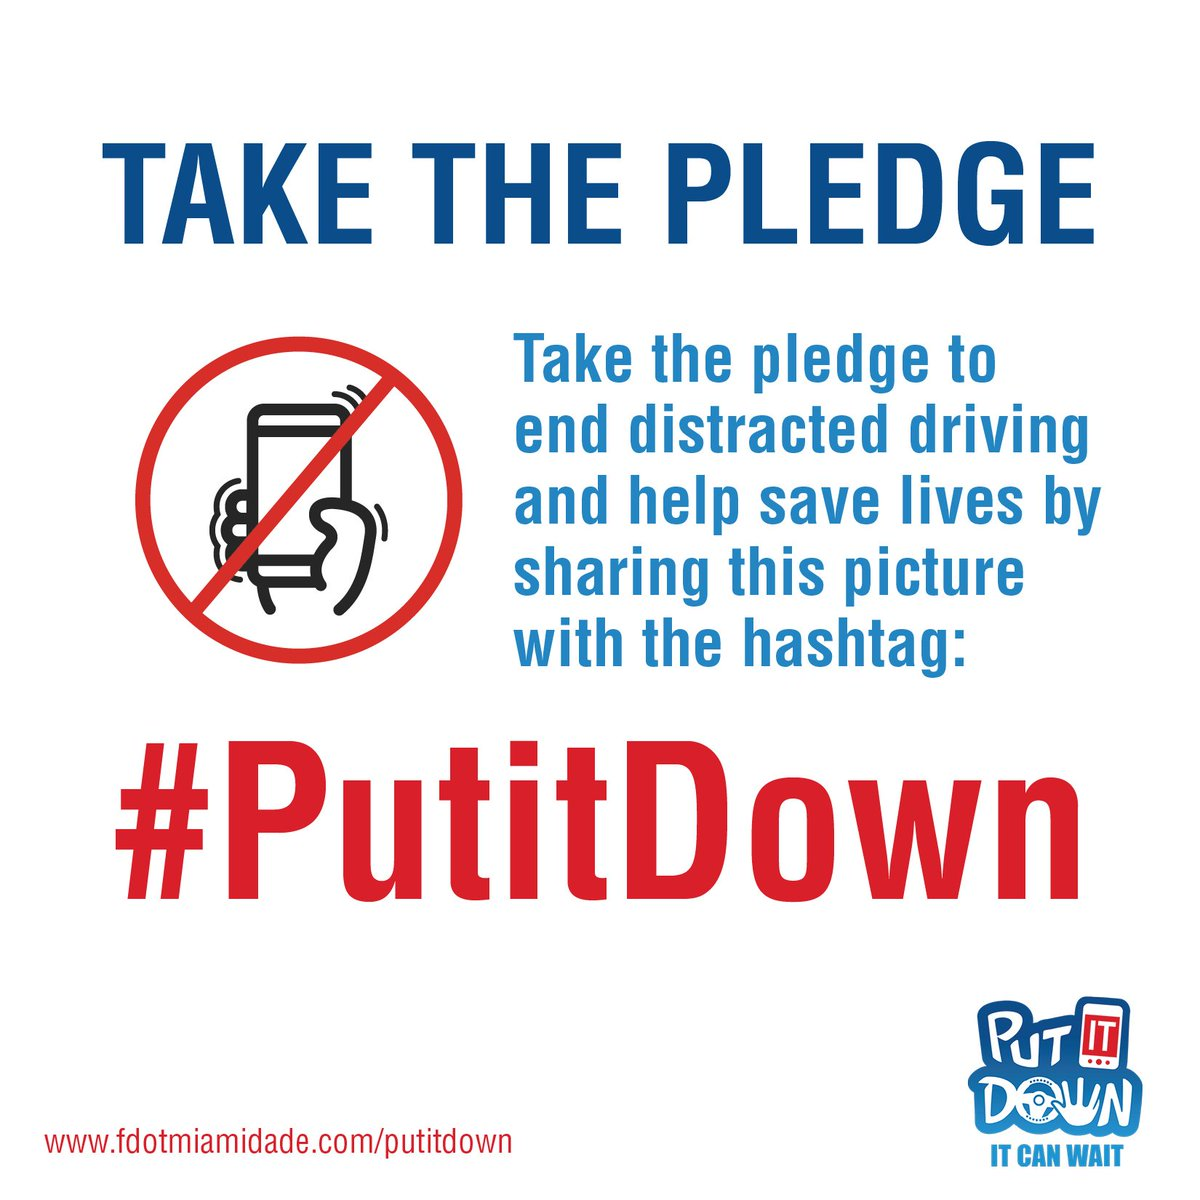 Join us in taking the pledge to #PutitDown. Save a life today, don't drive distracted. #FocusonDrivingFL https://t.co/5bG0Kd0uas